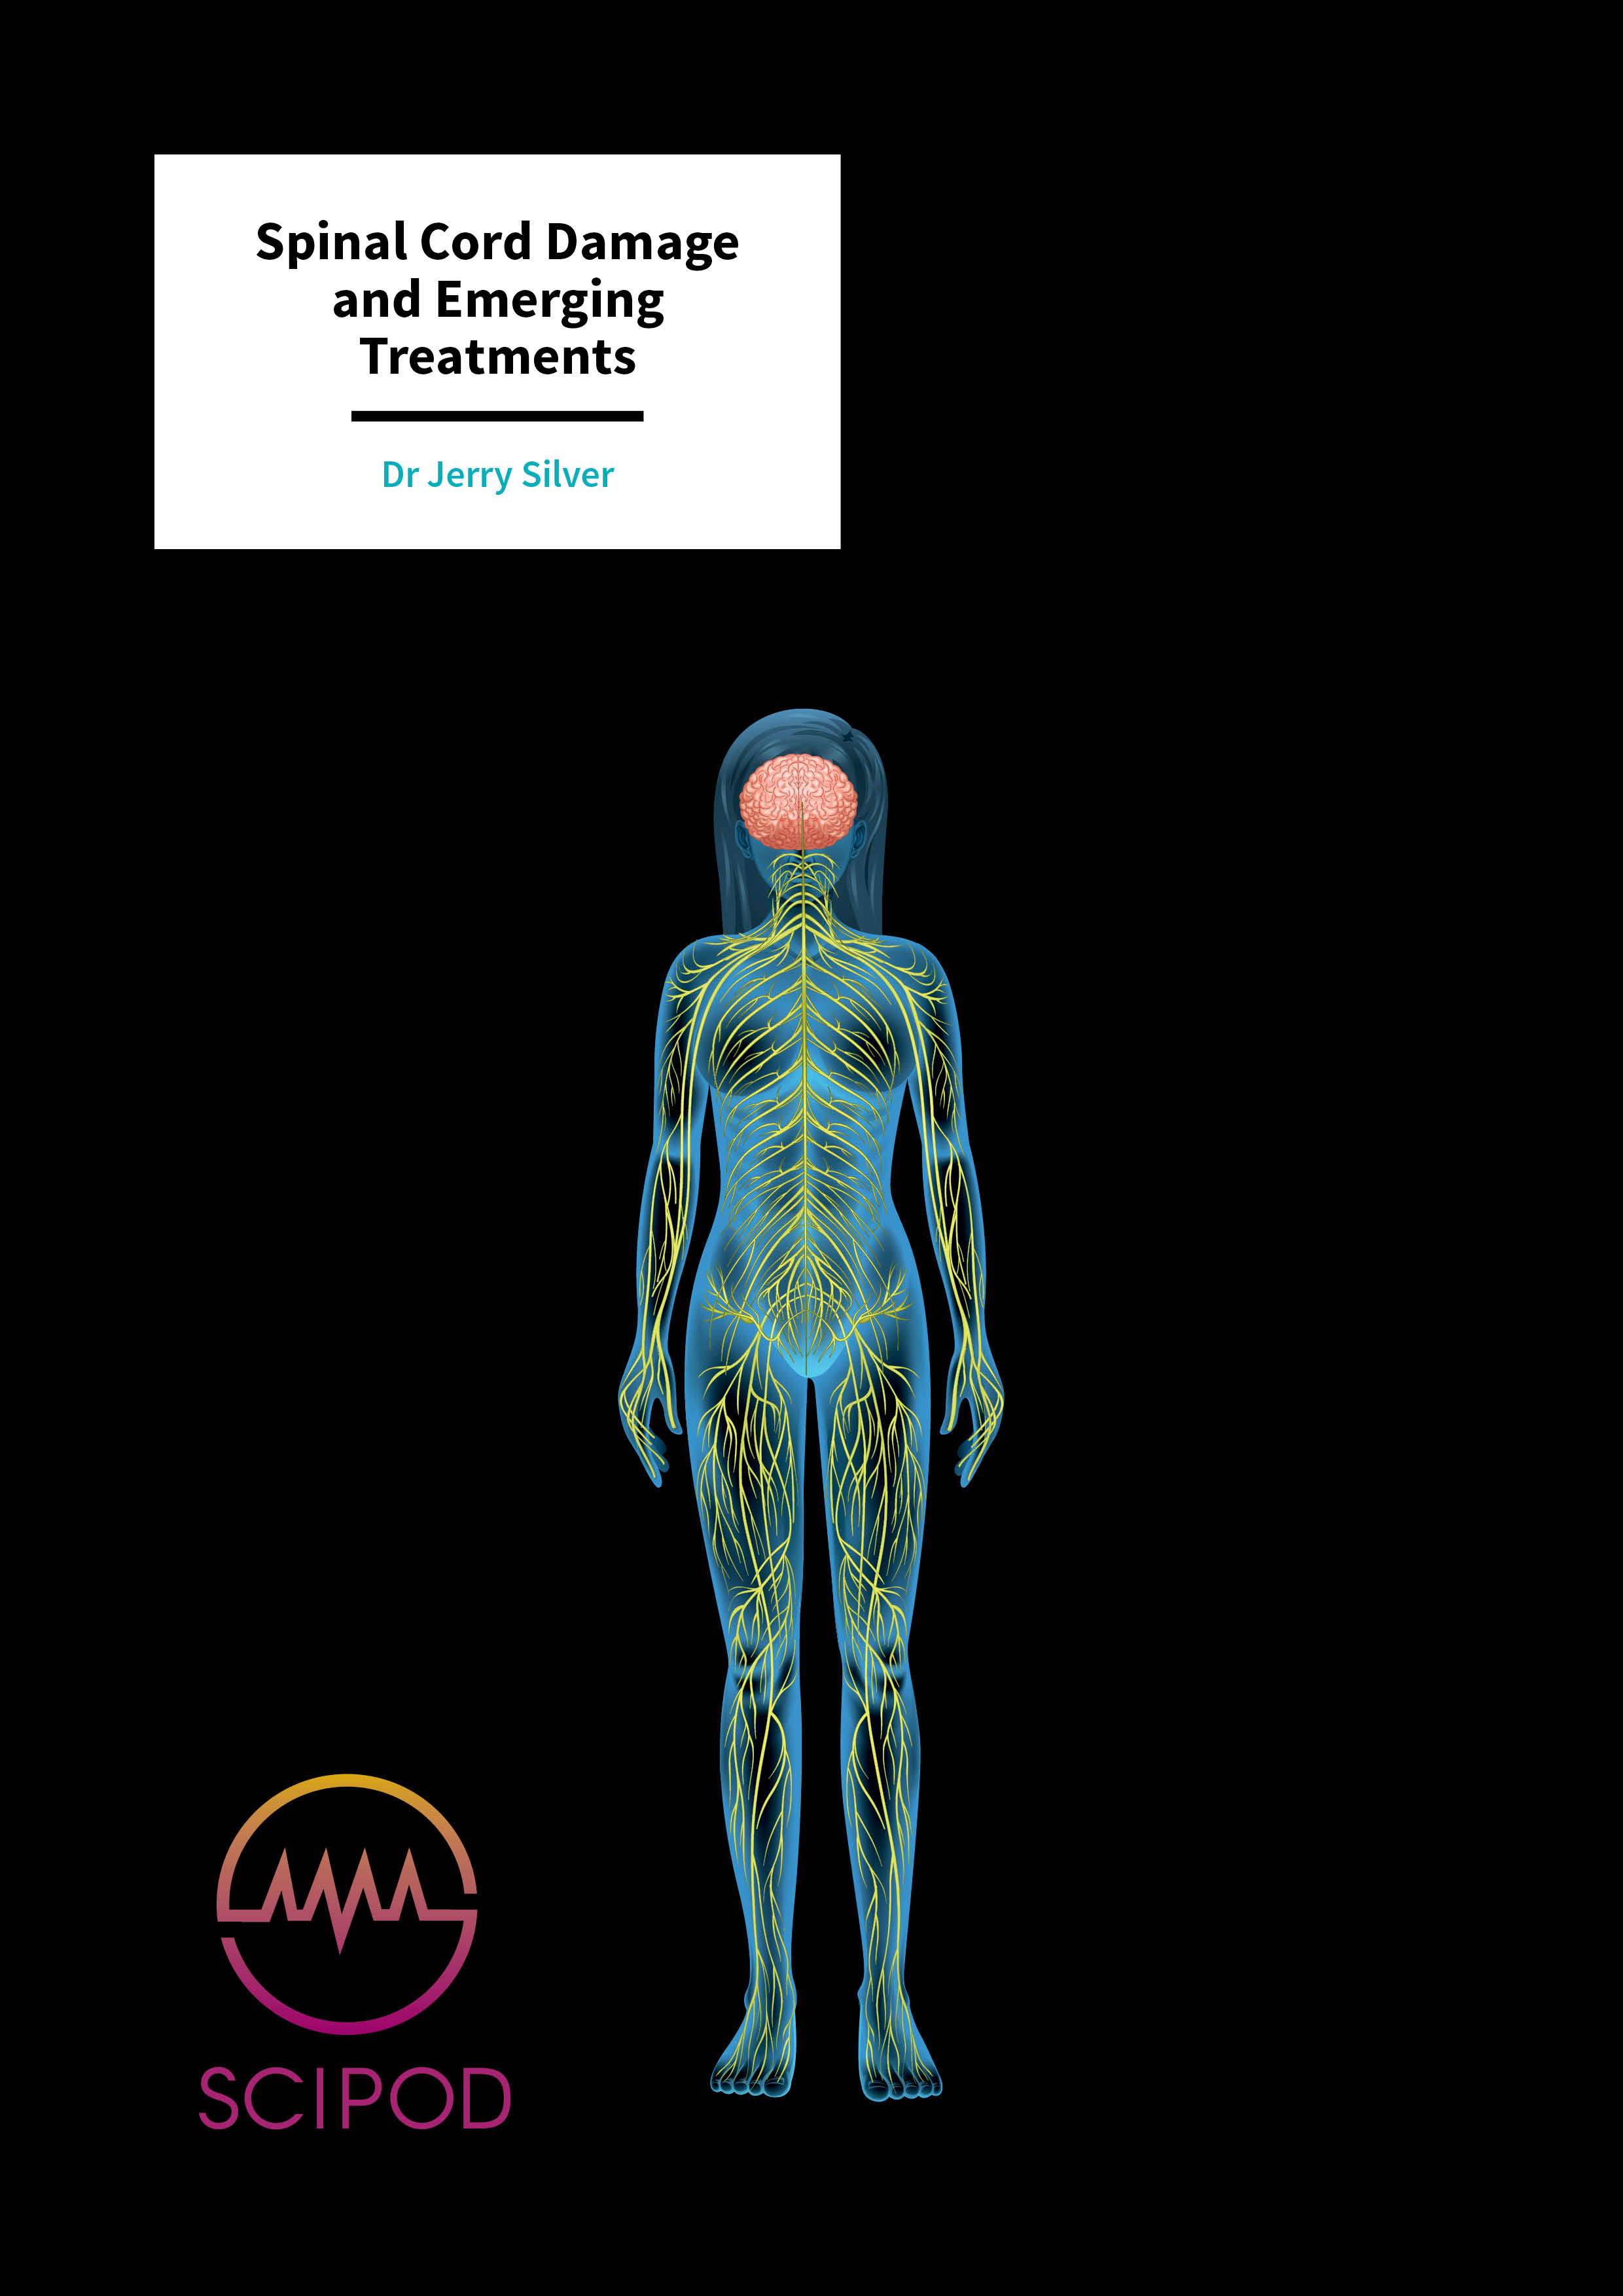 Spinal Cord Damage and Emerging Treatments – Dr Jerry Silver, Case Western Reserve University